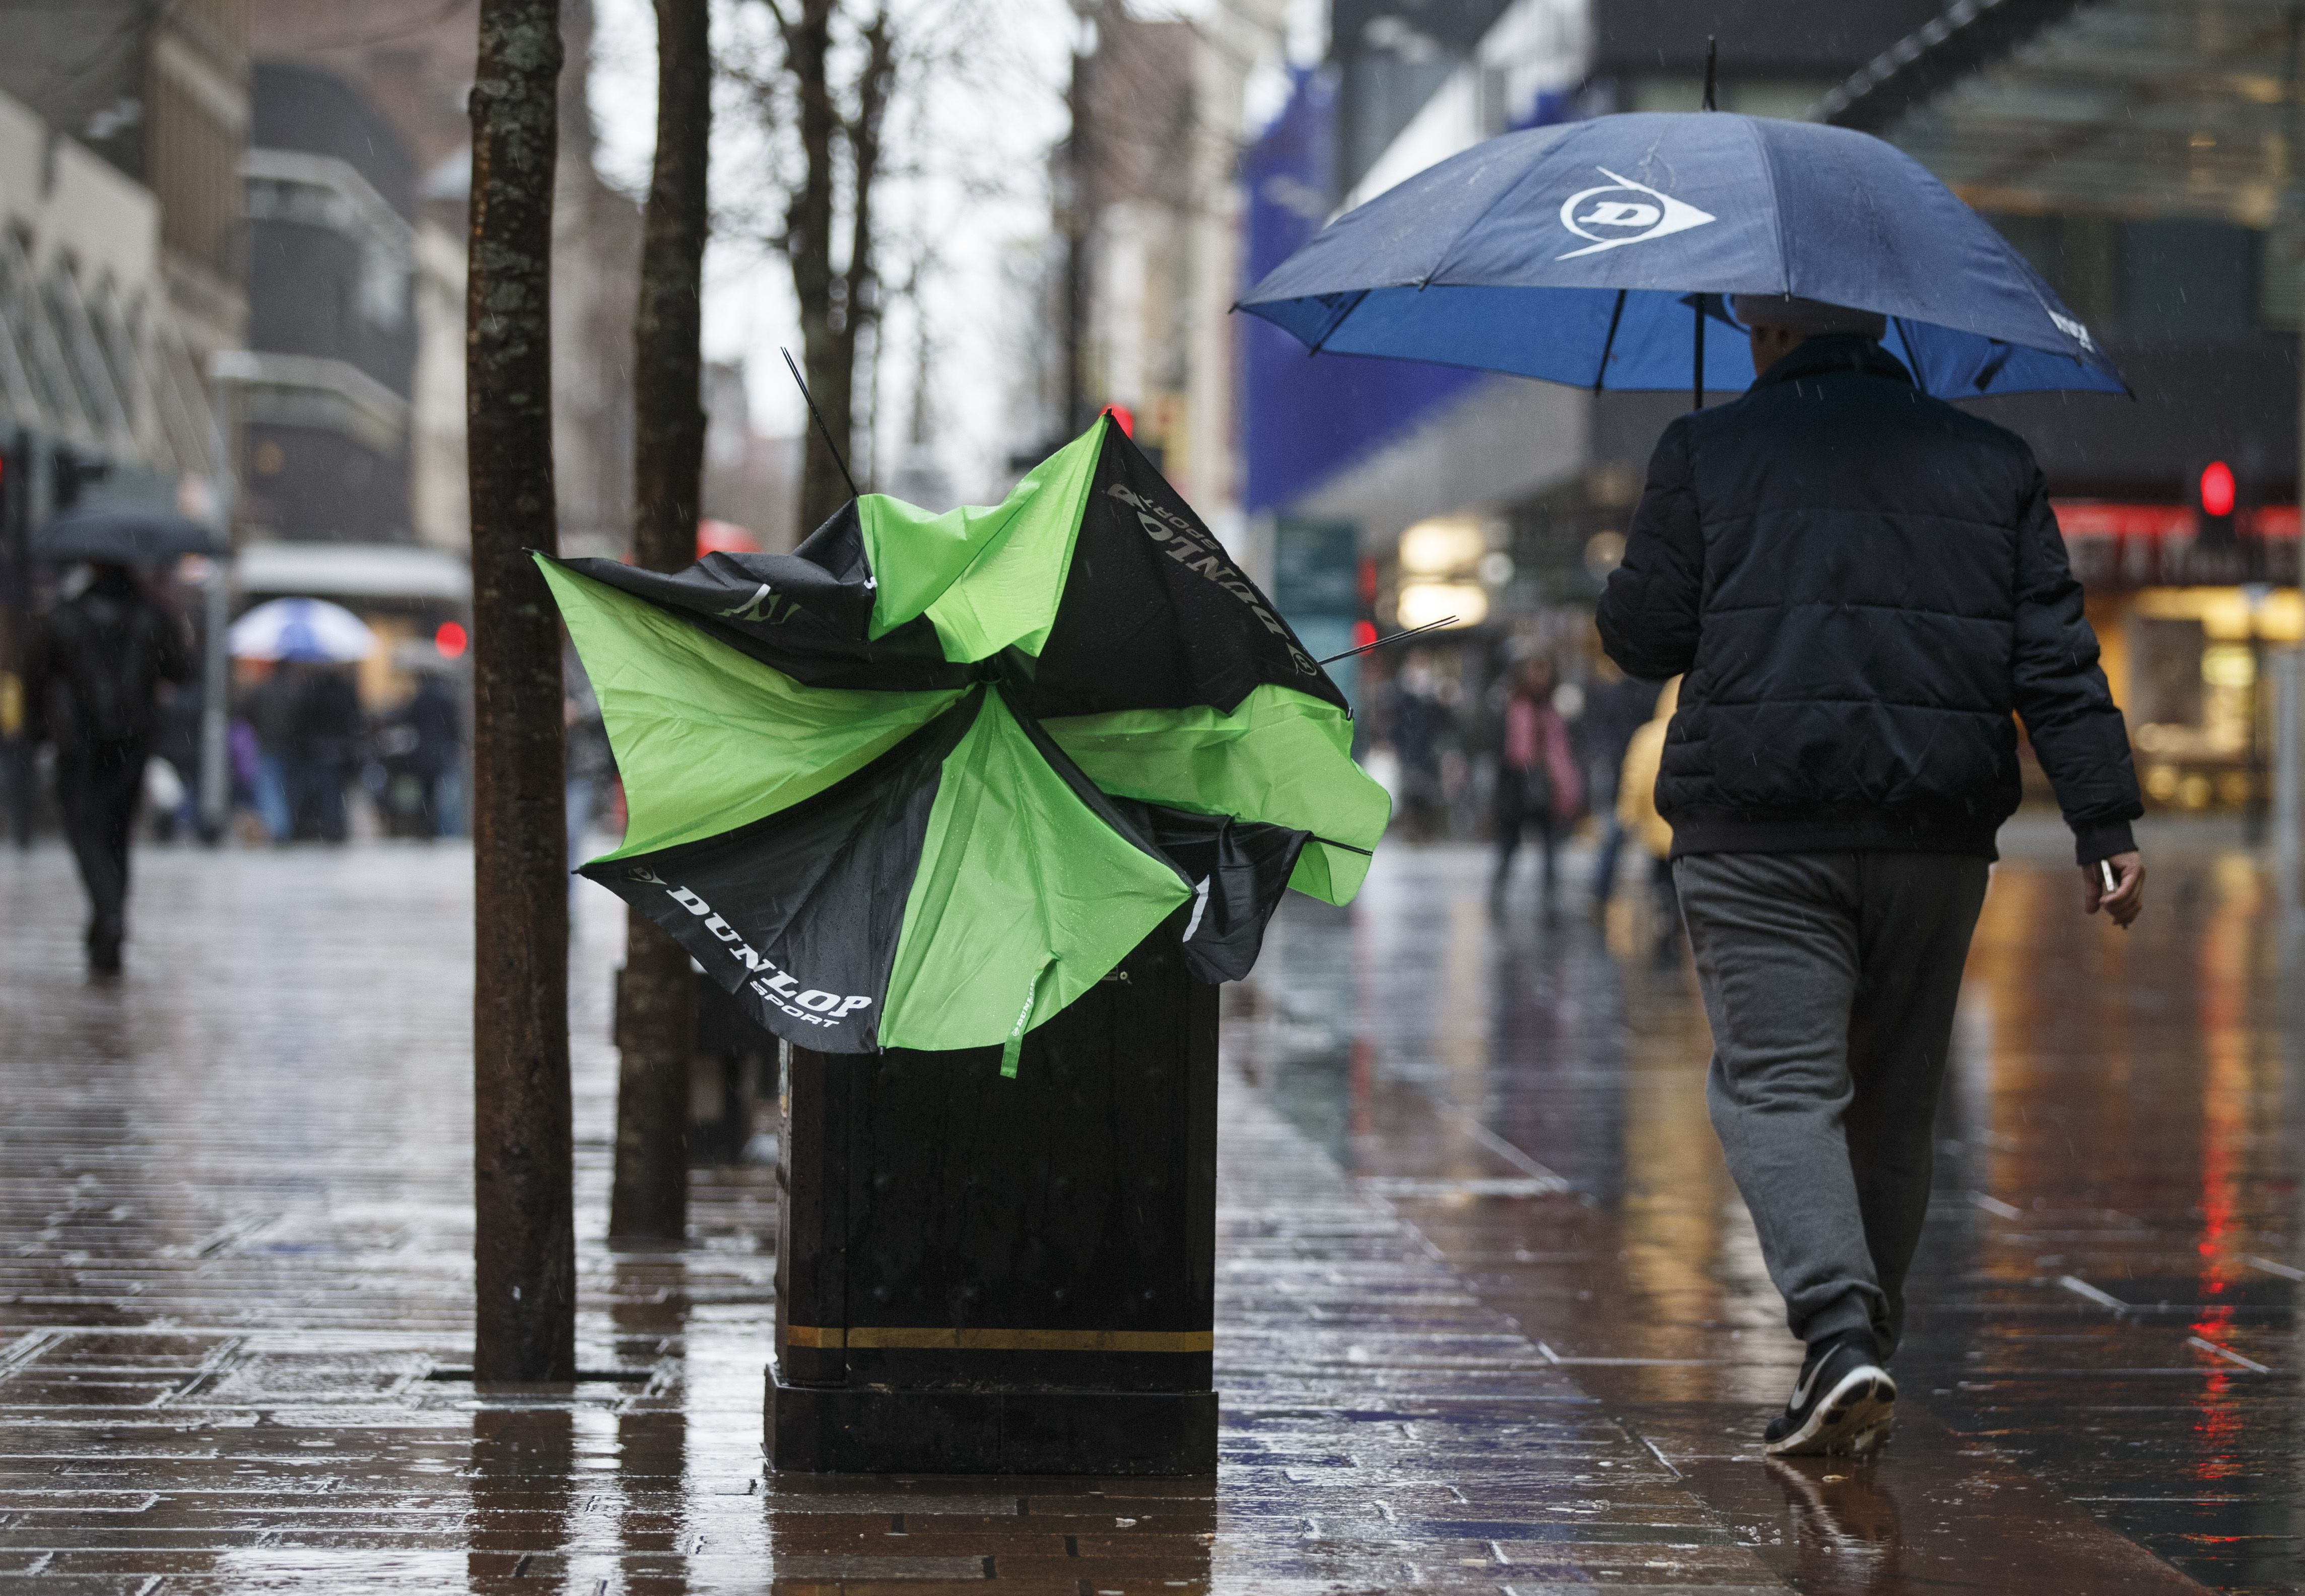 Strong winds and rain have hit this morning